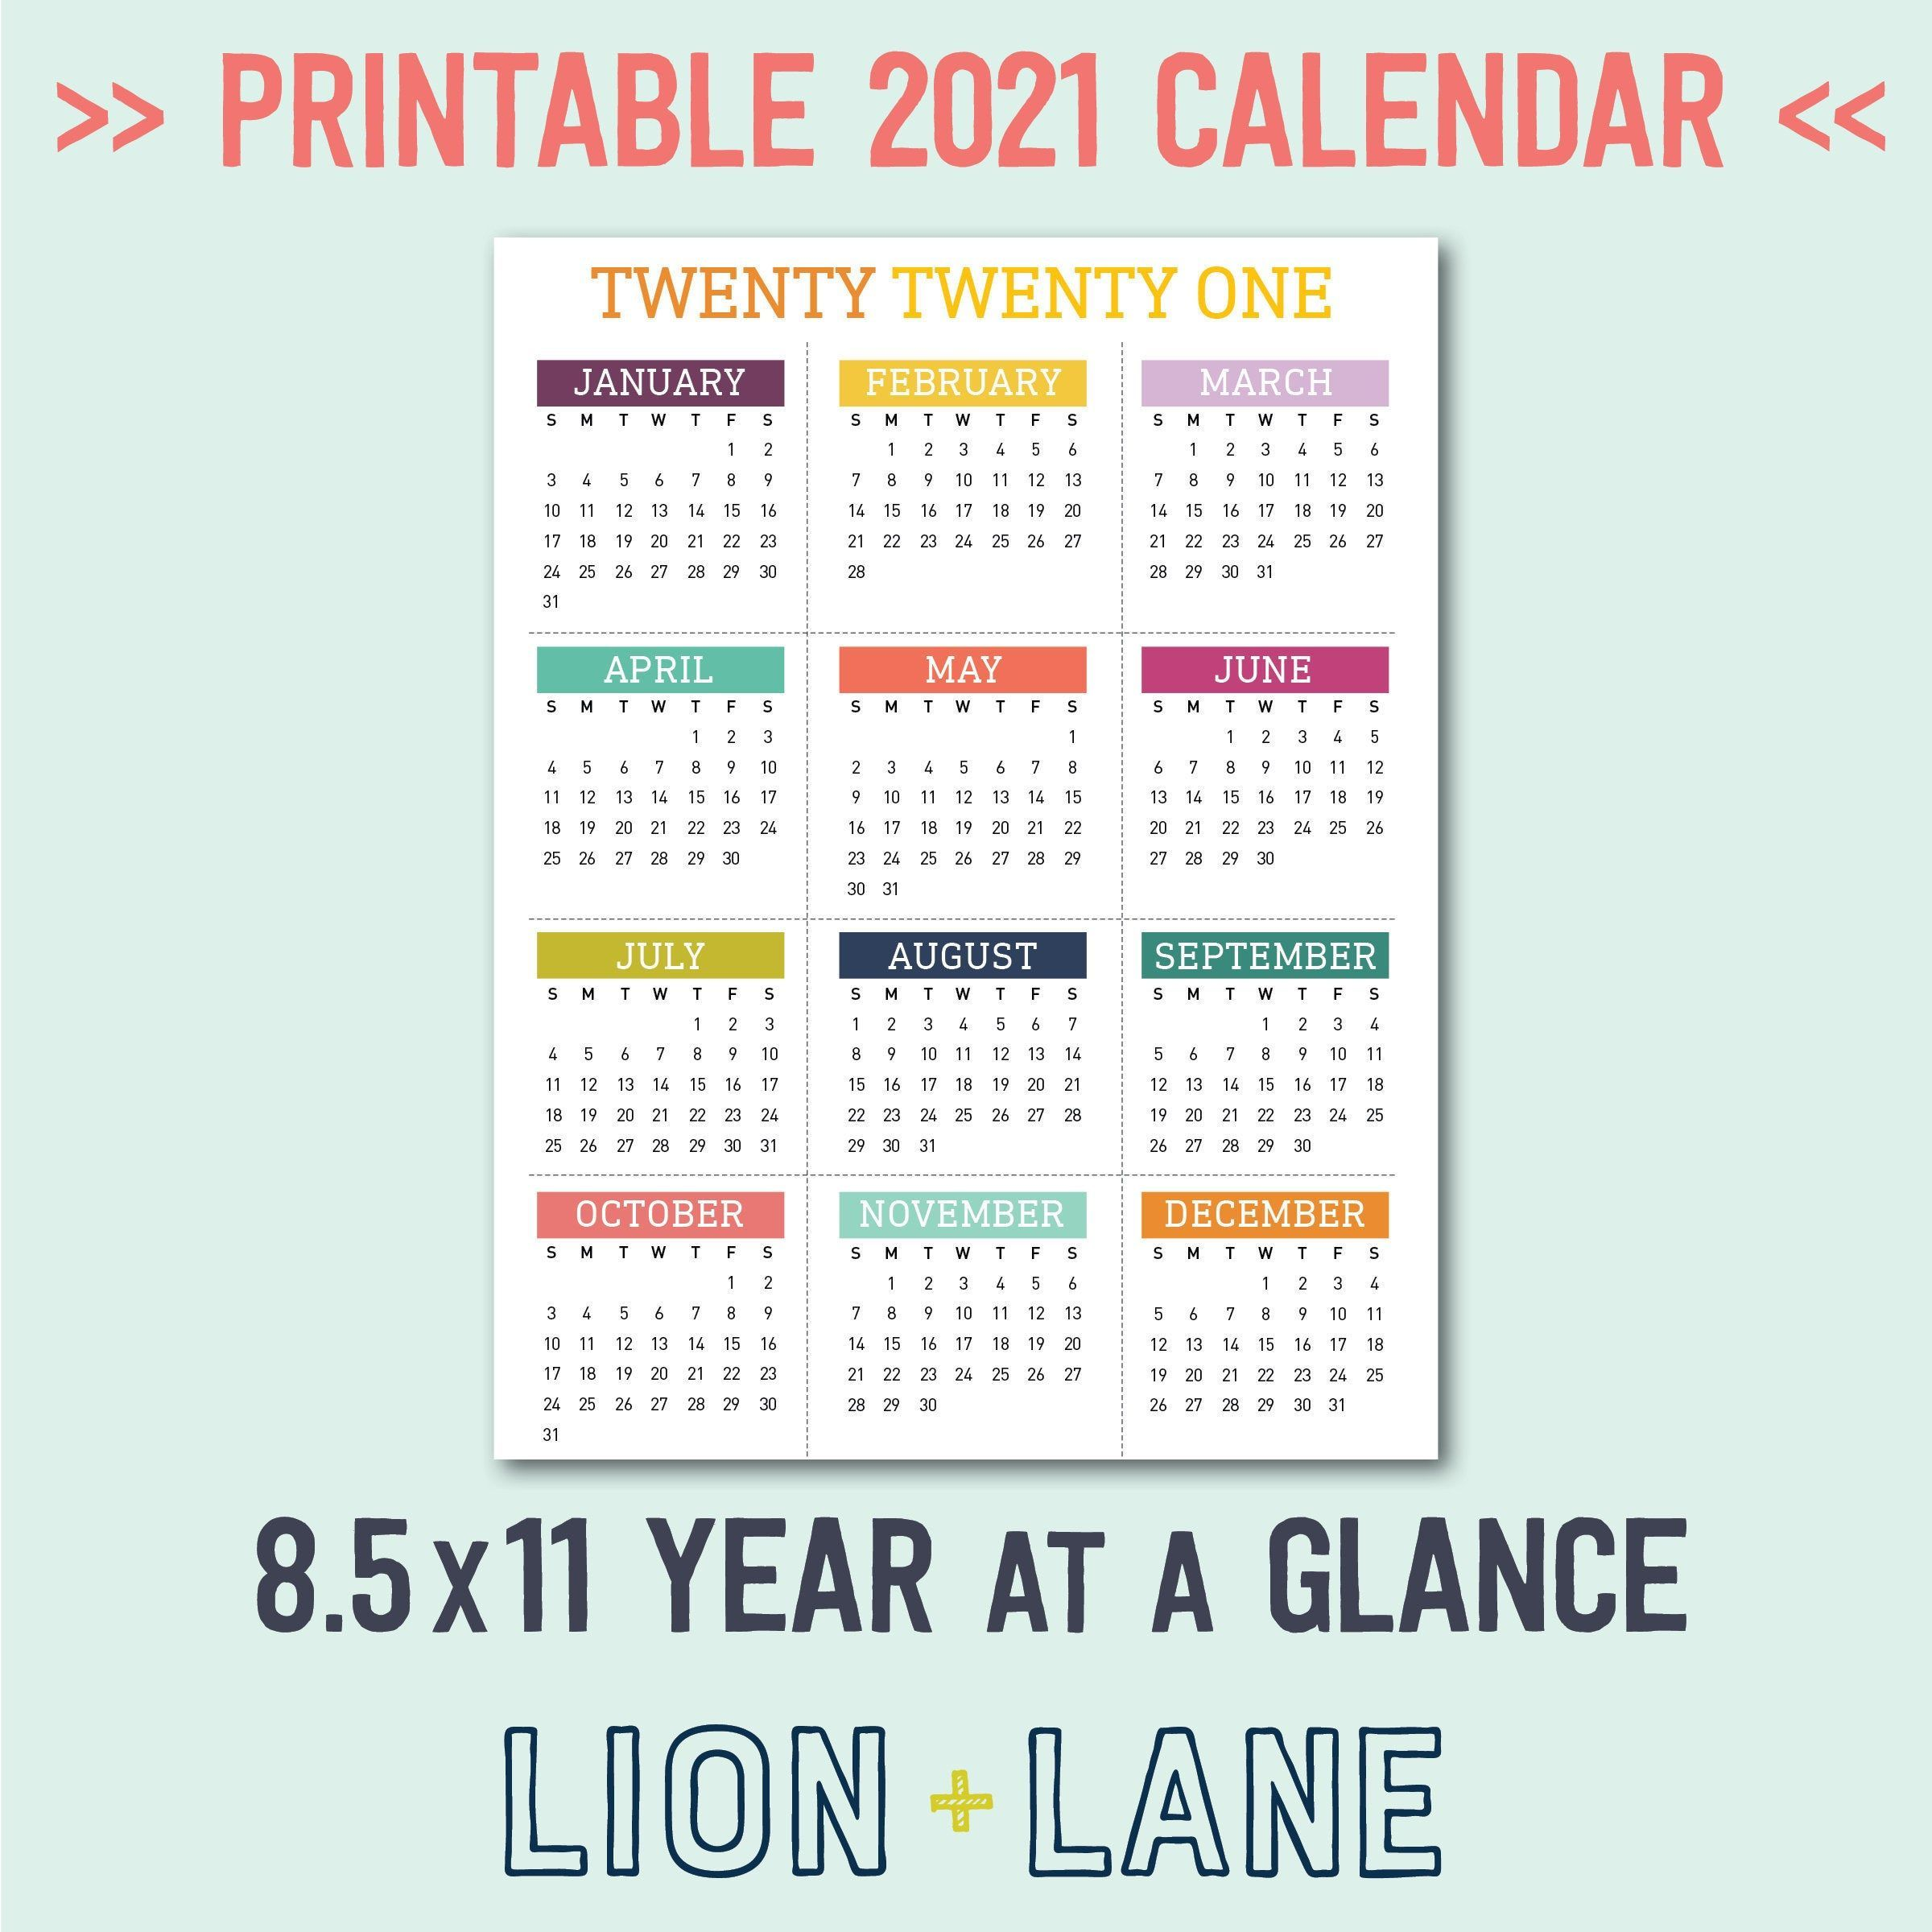 2021 Printable Calendar Year At A Glance 8 5x11 Letter Within Printable National Day Calendar In 2021 Printable Yearly Calendar Calendar Printables 2021 Calendar